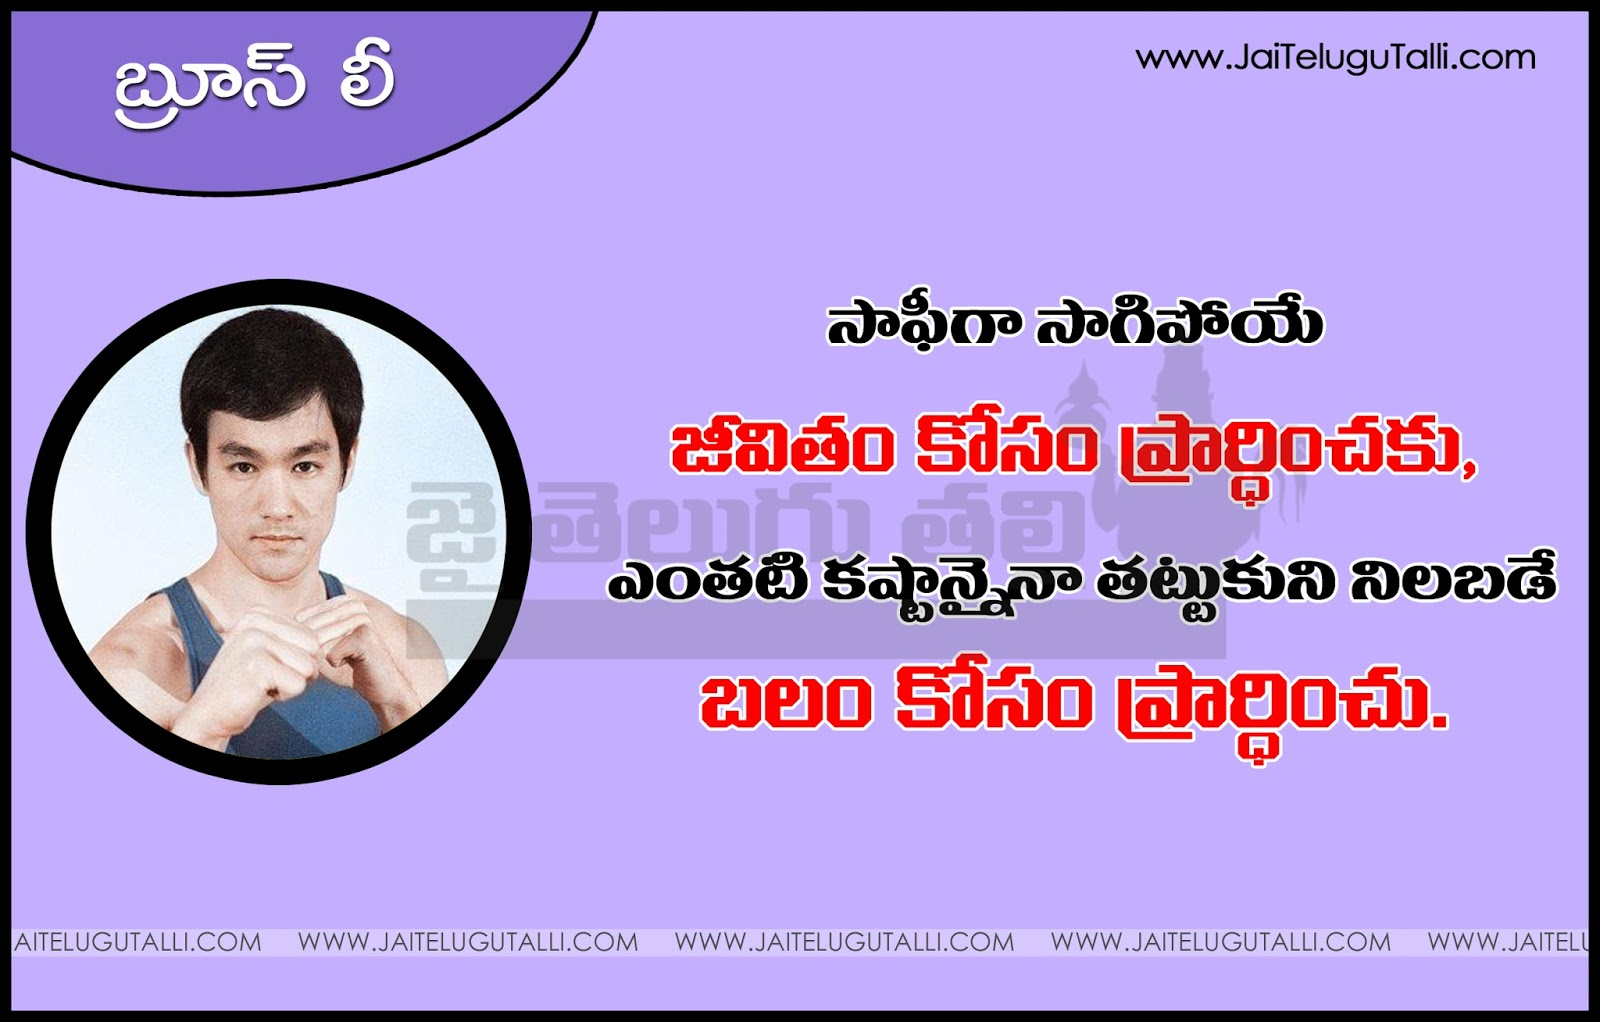 Inspirational Thoughts Inspirational Thoughts And Sayingsbruce Lee  Www